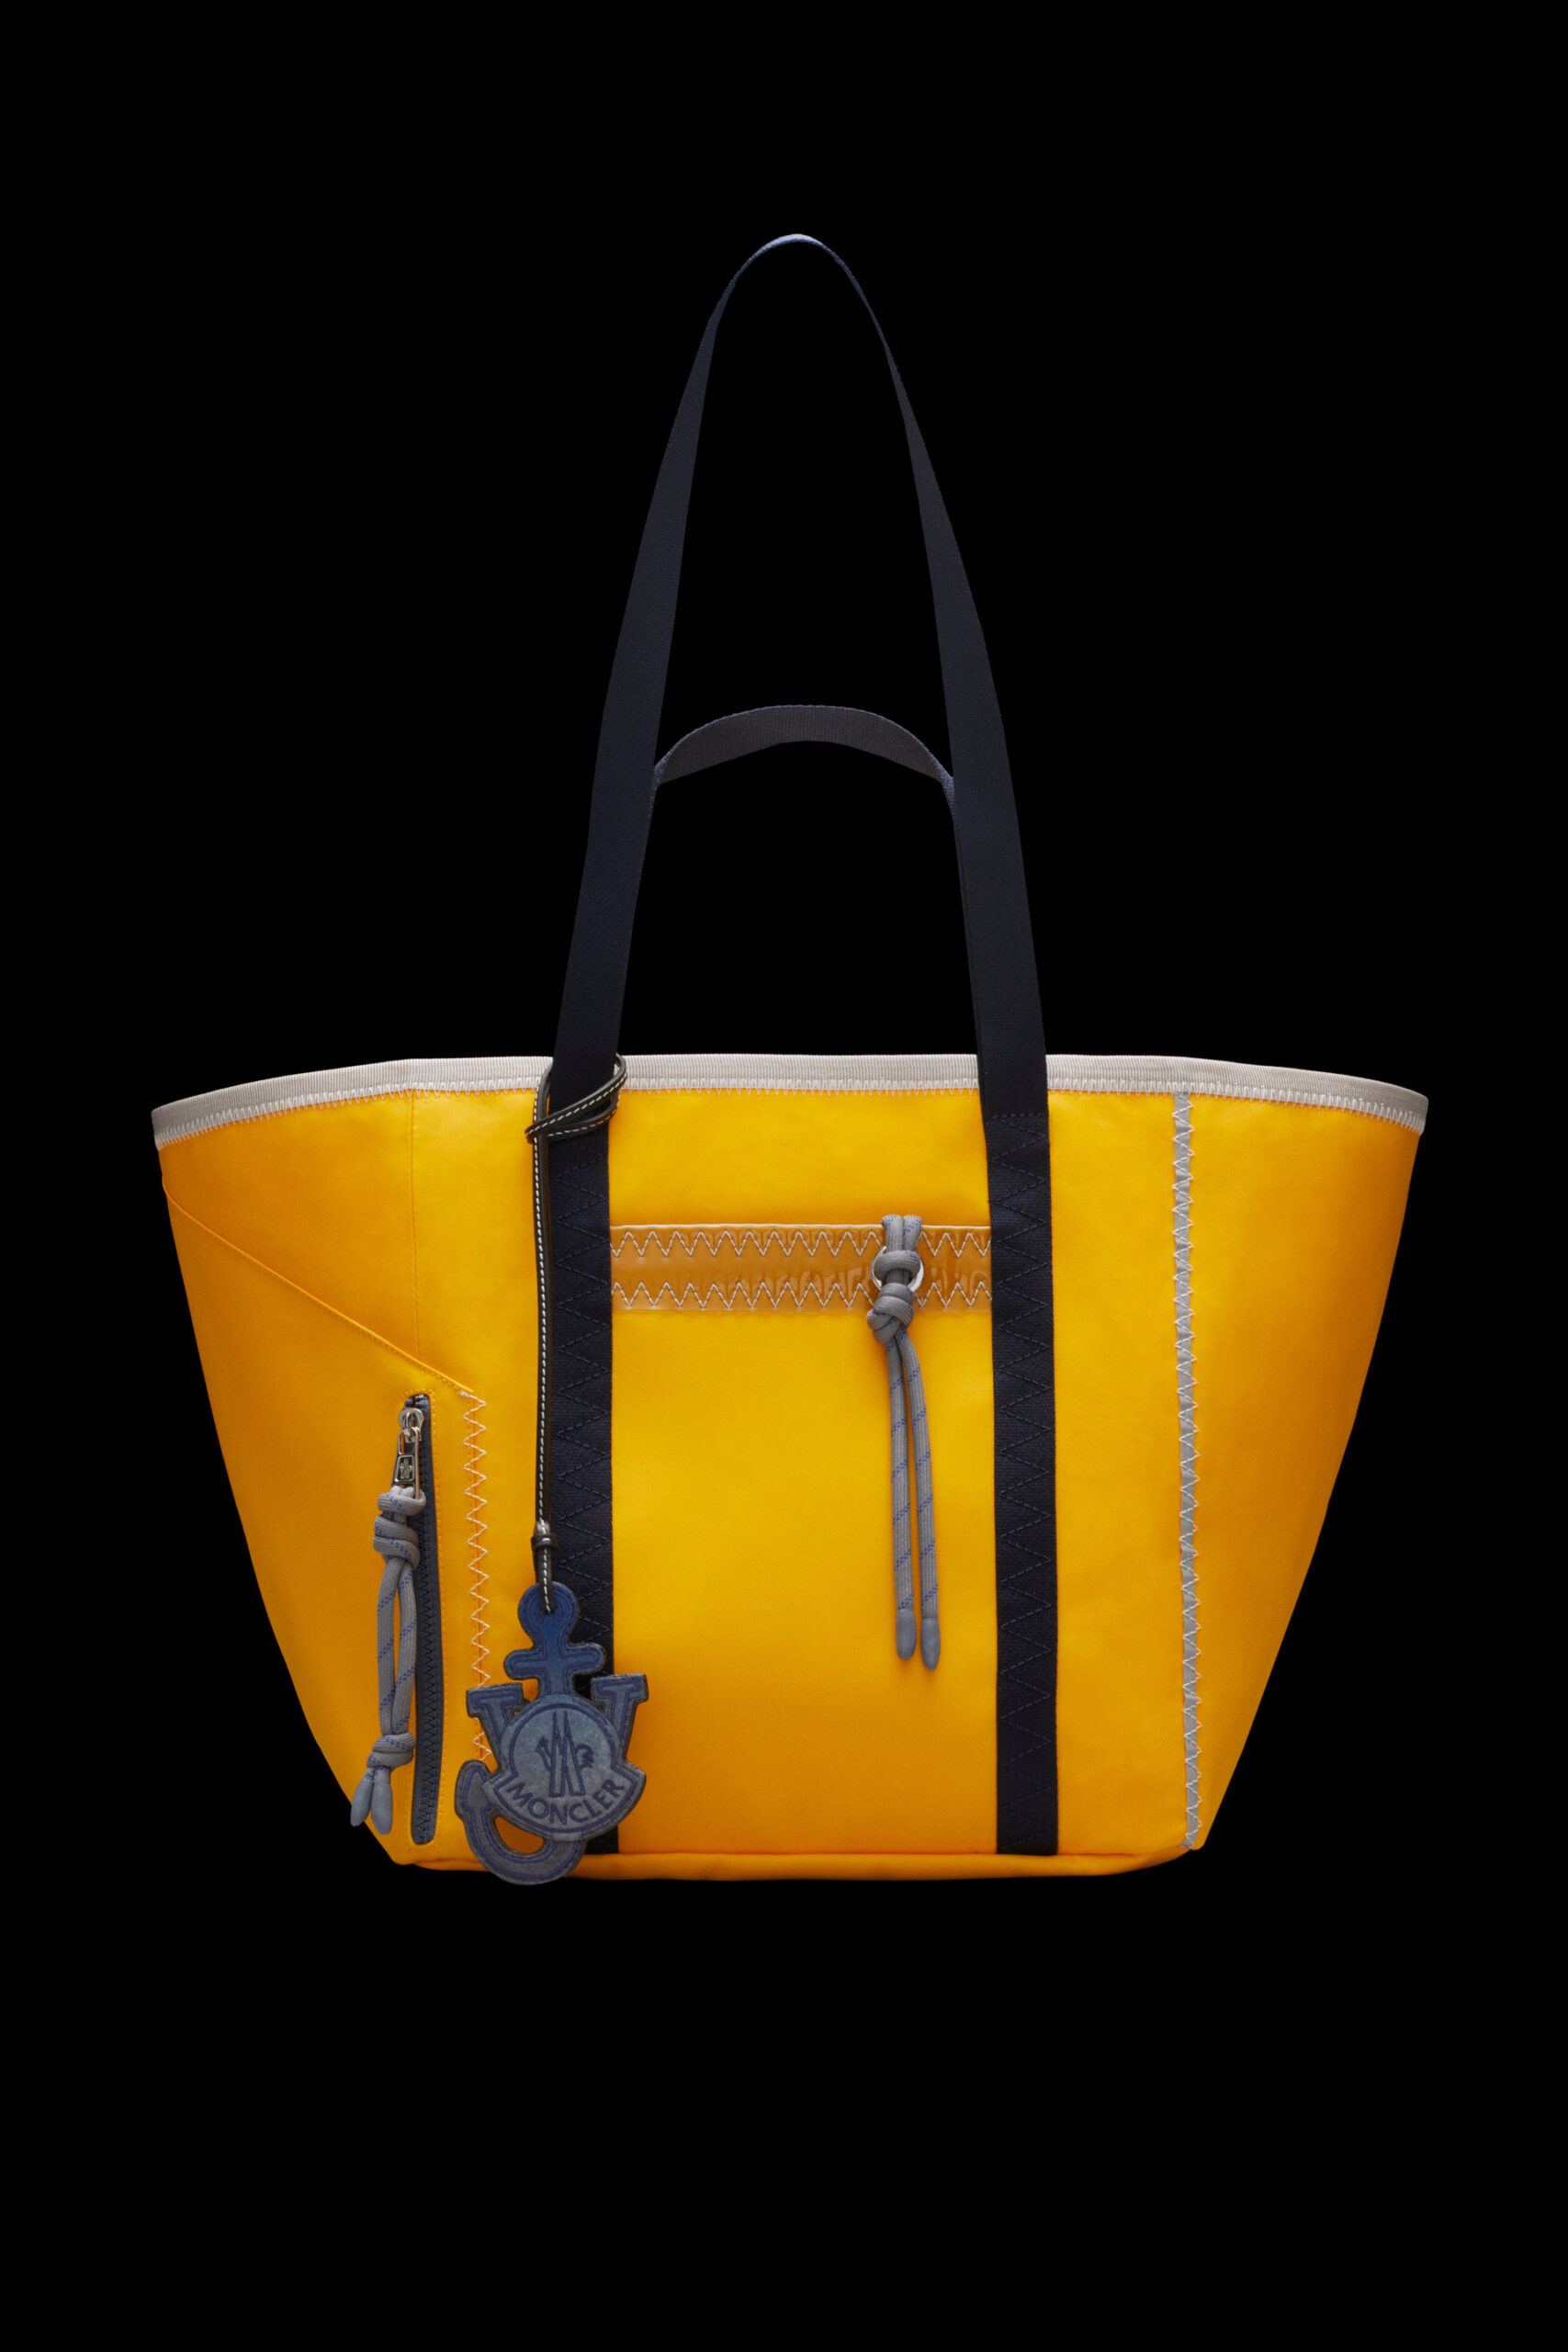 mens style guide boat theme yellow tote